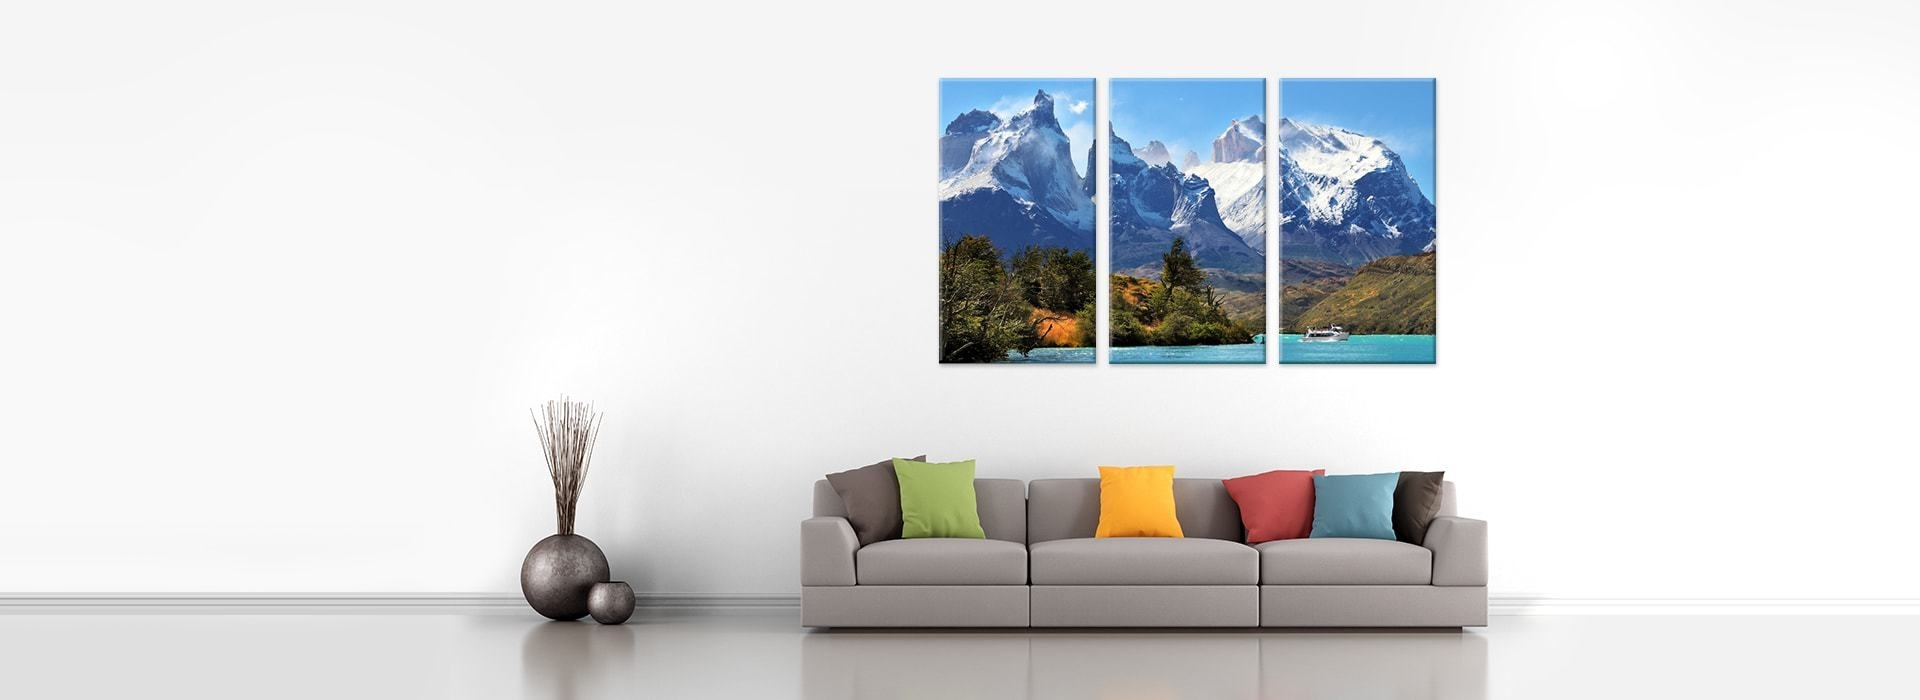 Saving Tips On Personalized Canvas Prints | Music Interprete With Most Up To Date Melbourne Canvas Wall Art (View 9 of 15)